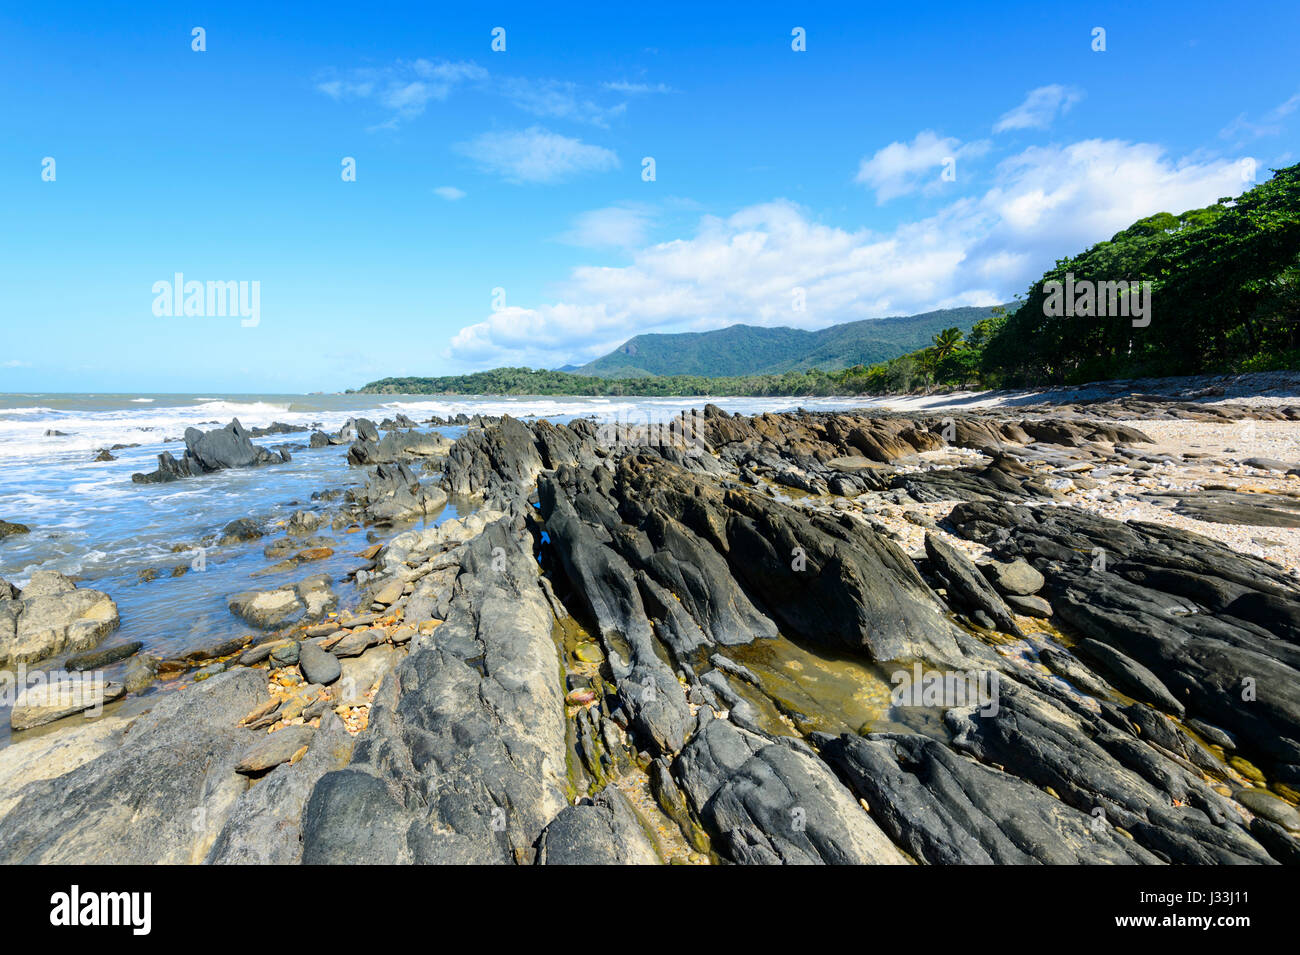 Scenic rugged rocky coast between Cairns and Port Douglas, Far North Queensland, FNQ, QLD, Australia - Stock Image